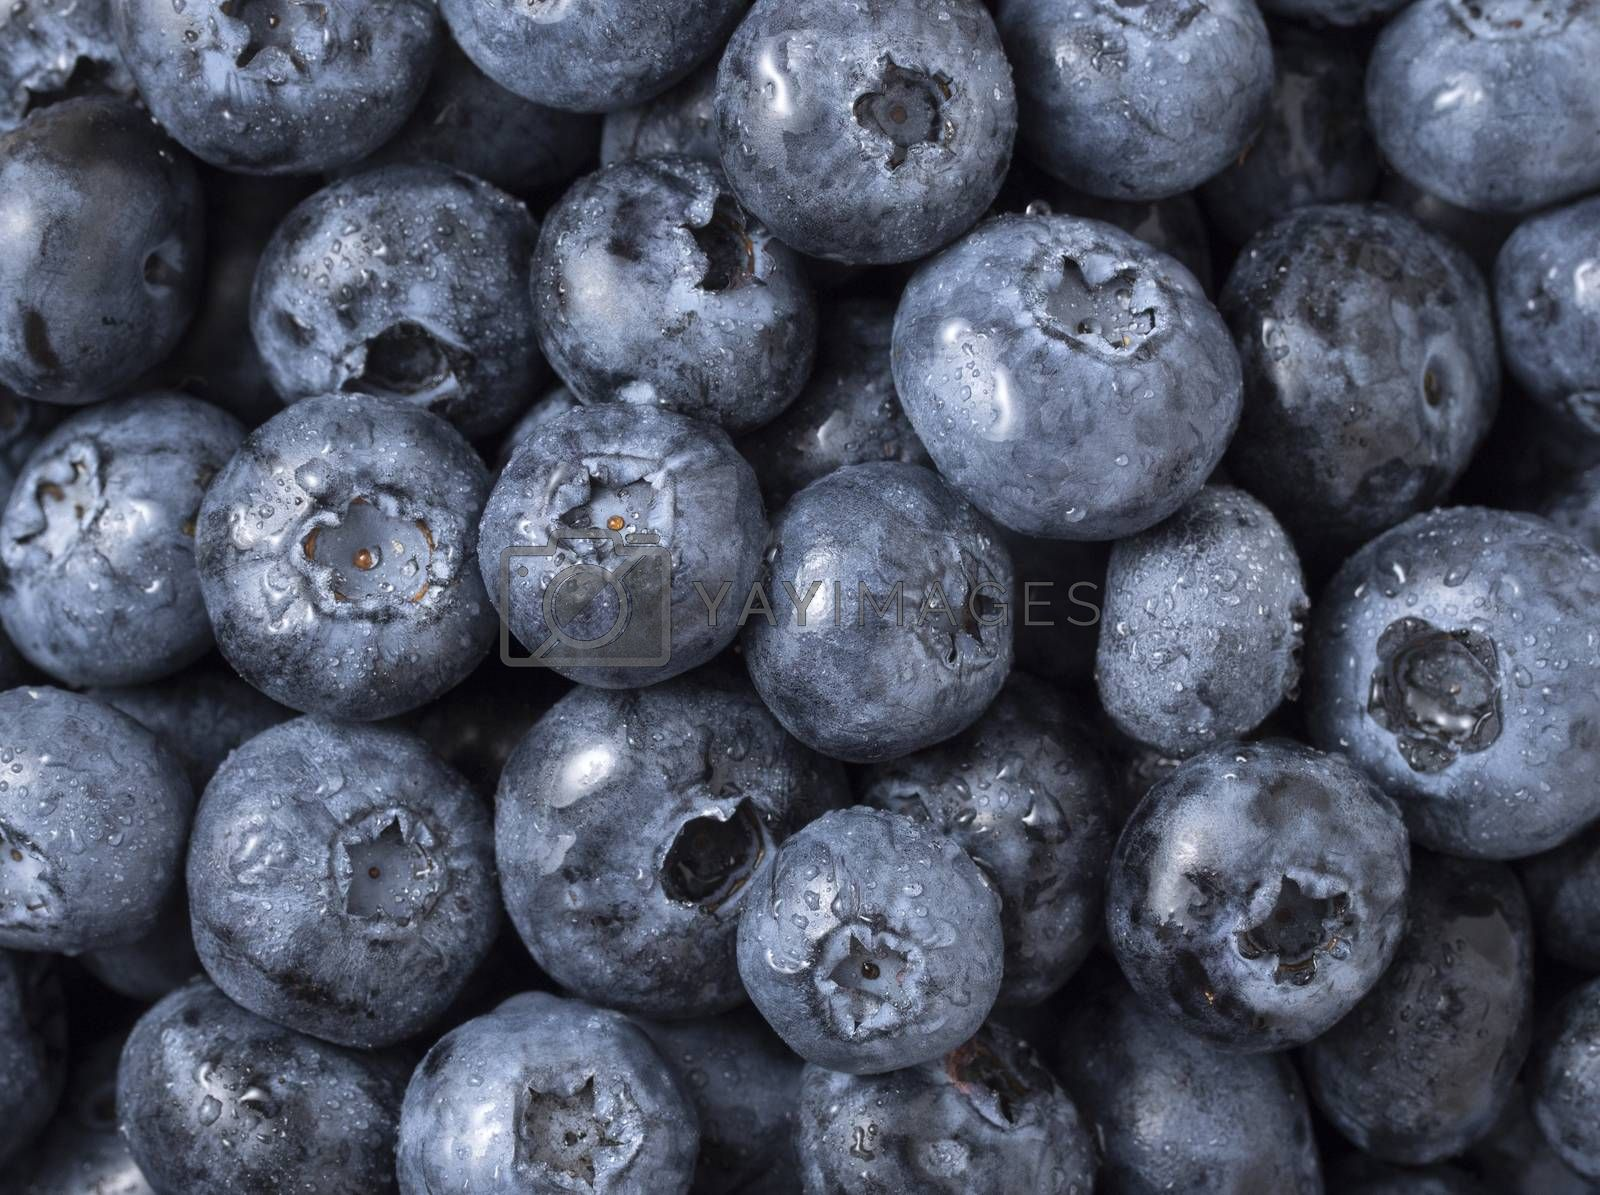 Royalty free image of Background of freshly picked blueberries. Top view, close up. by phortcach